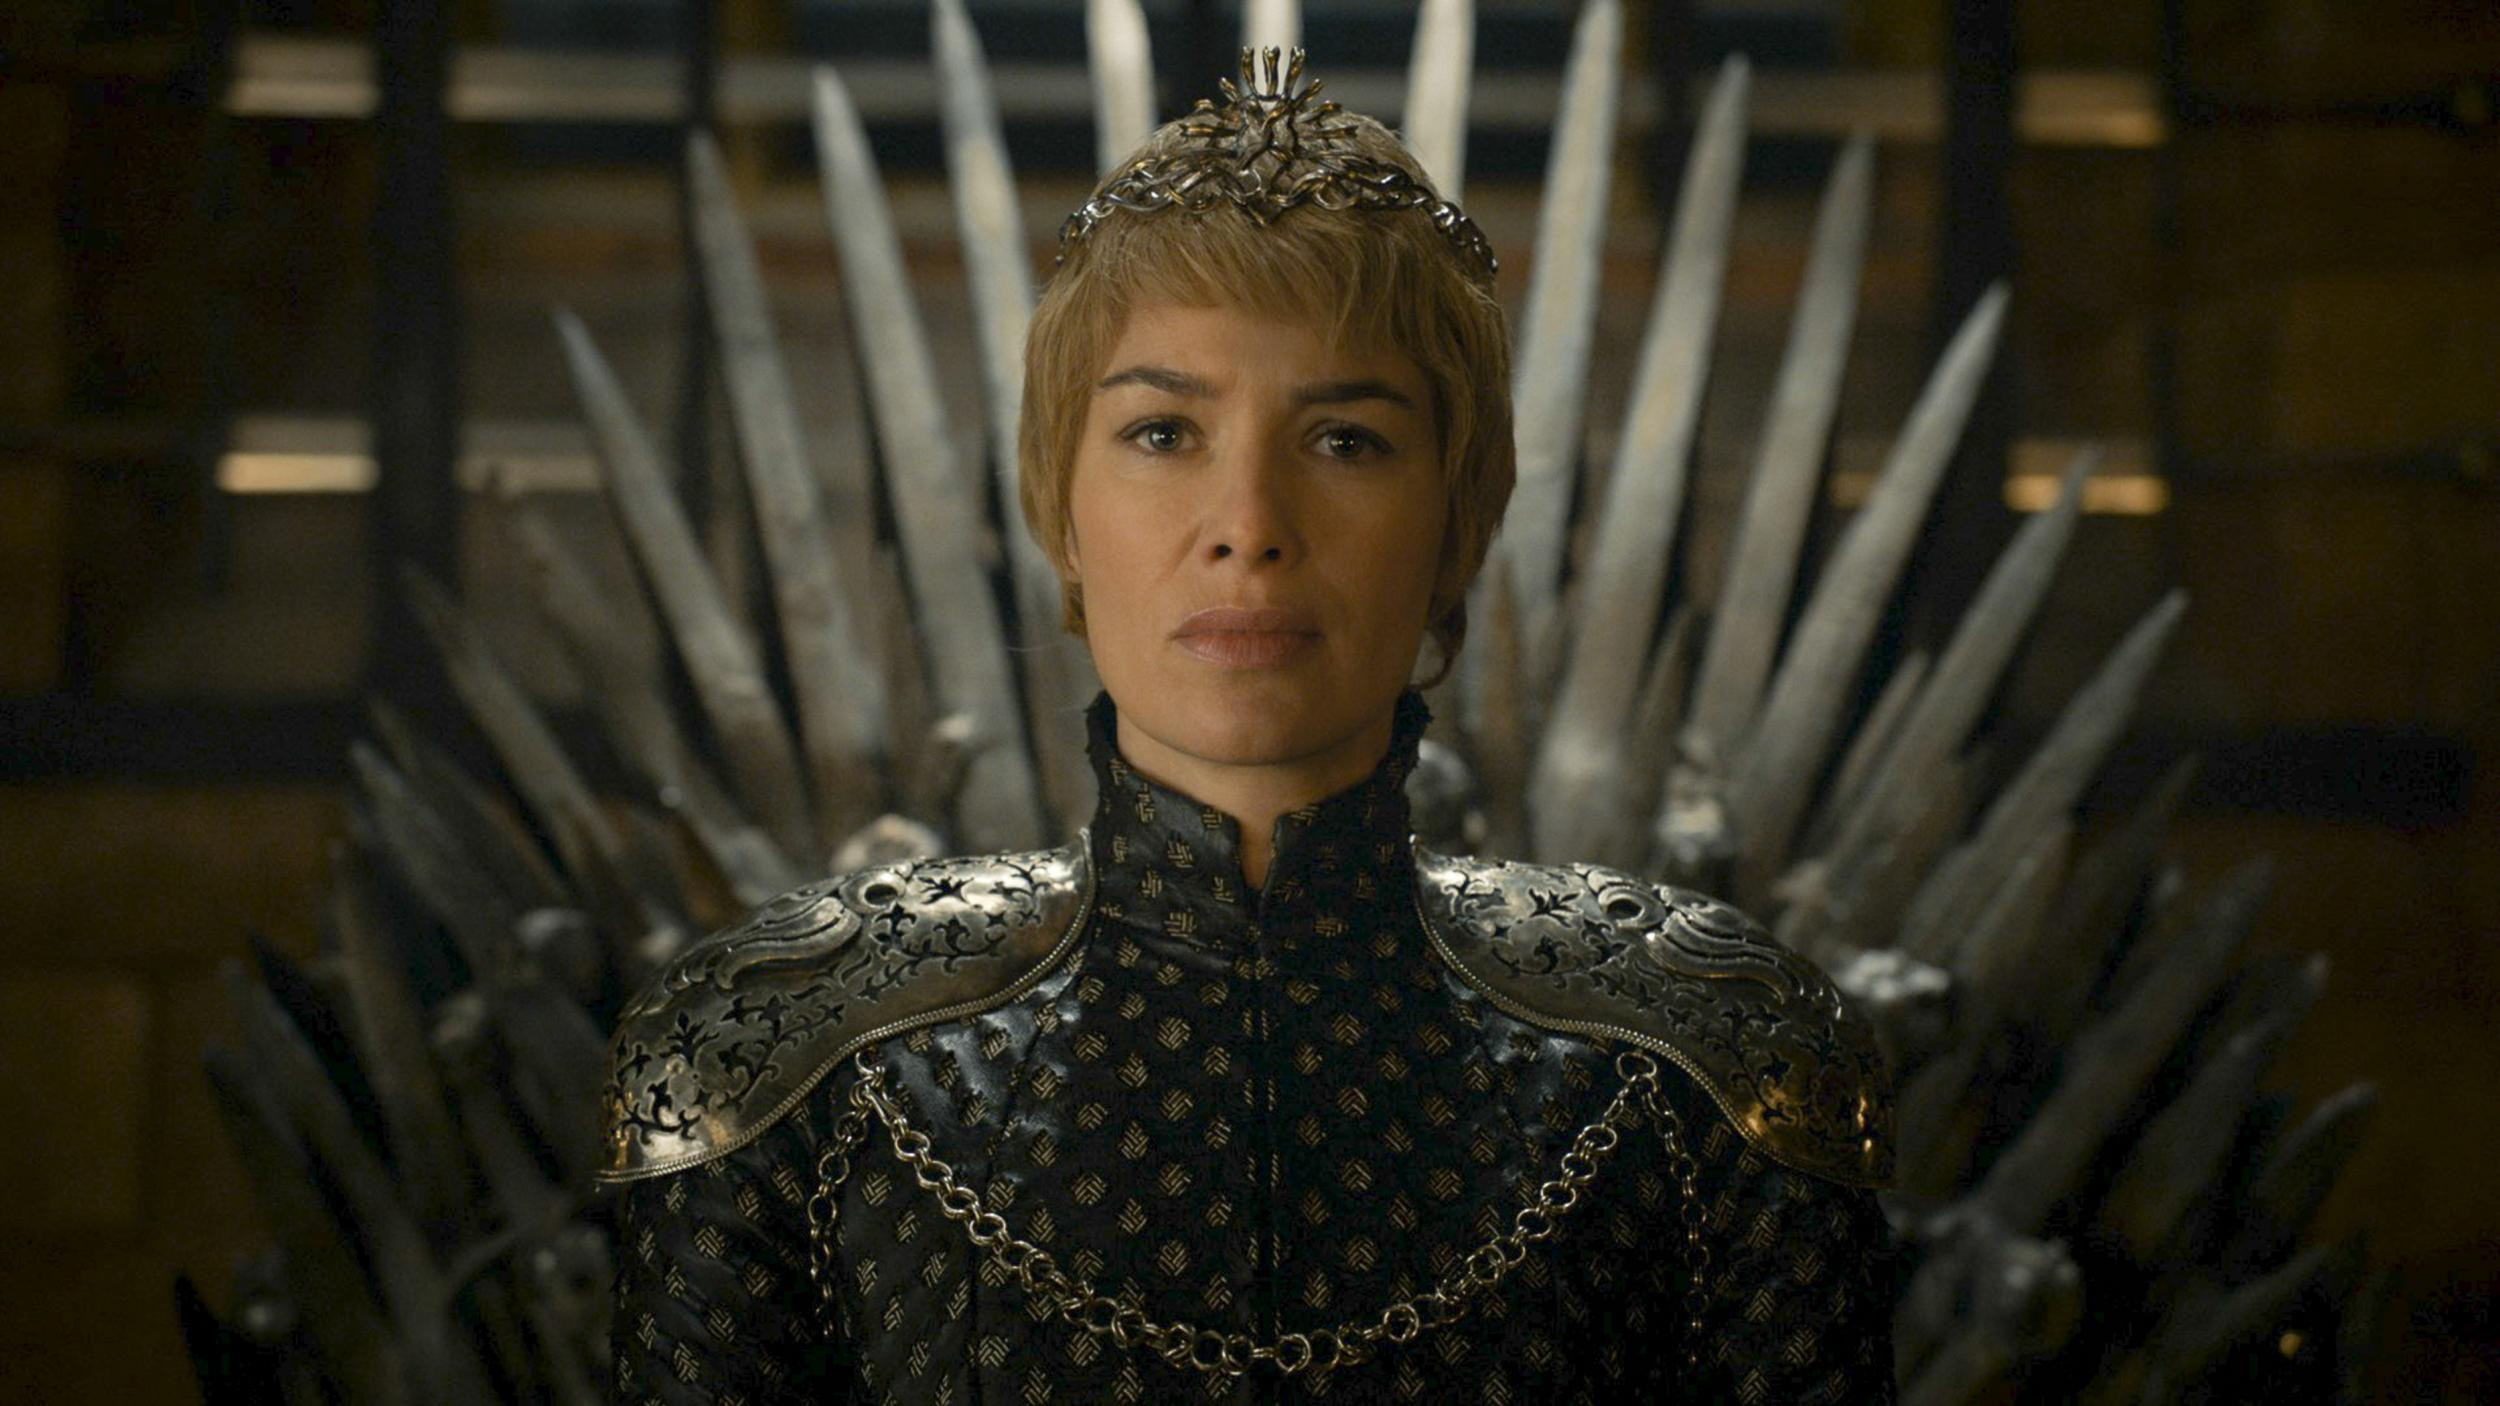 Game Of Thrones Season 7 Costume Designer Michele Clapton Talks Female Power Dressing War And The Crown The Independent Independent